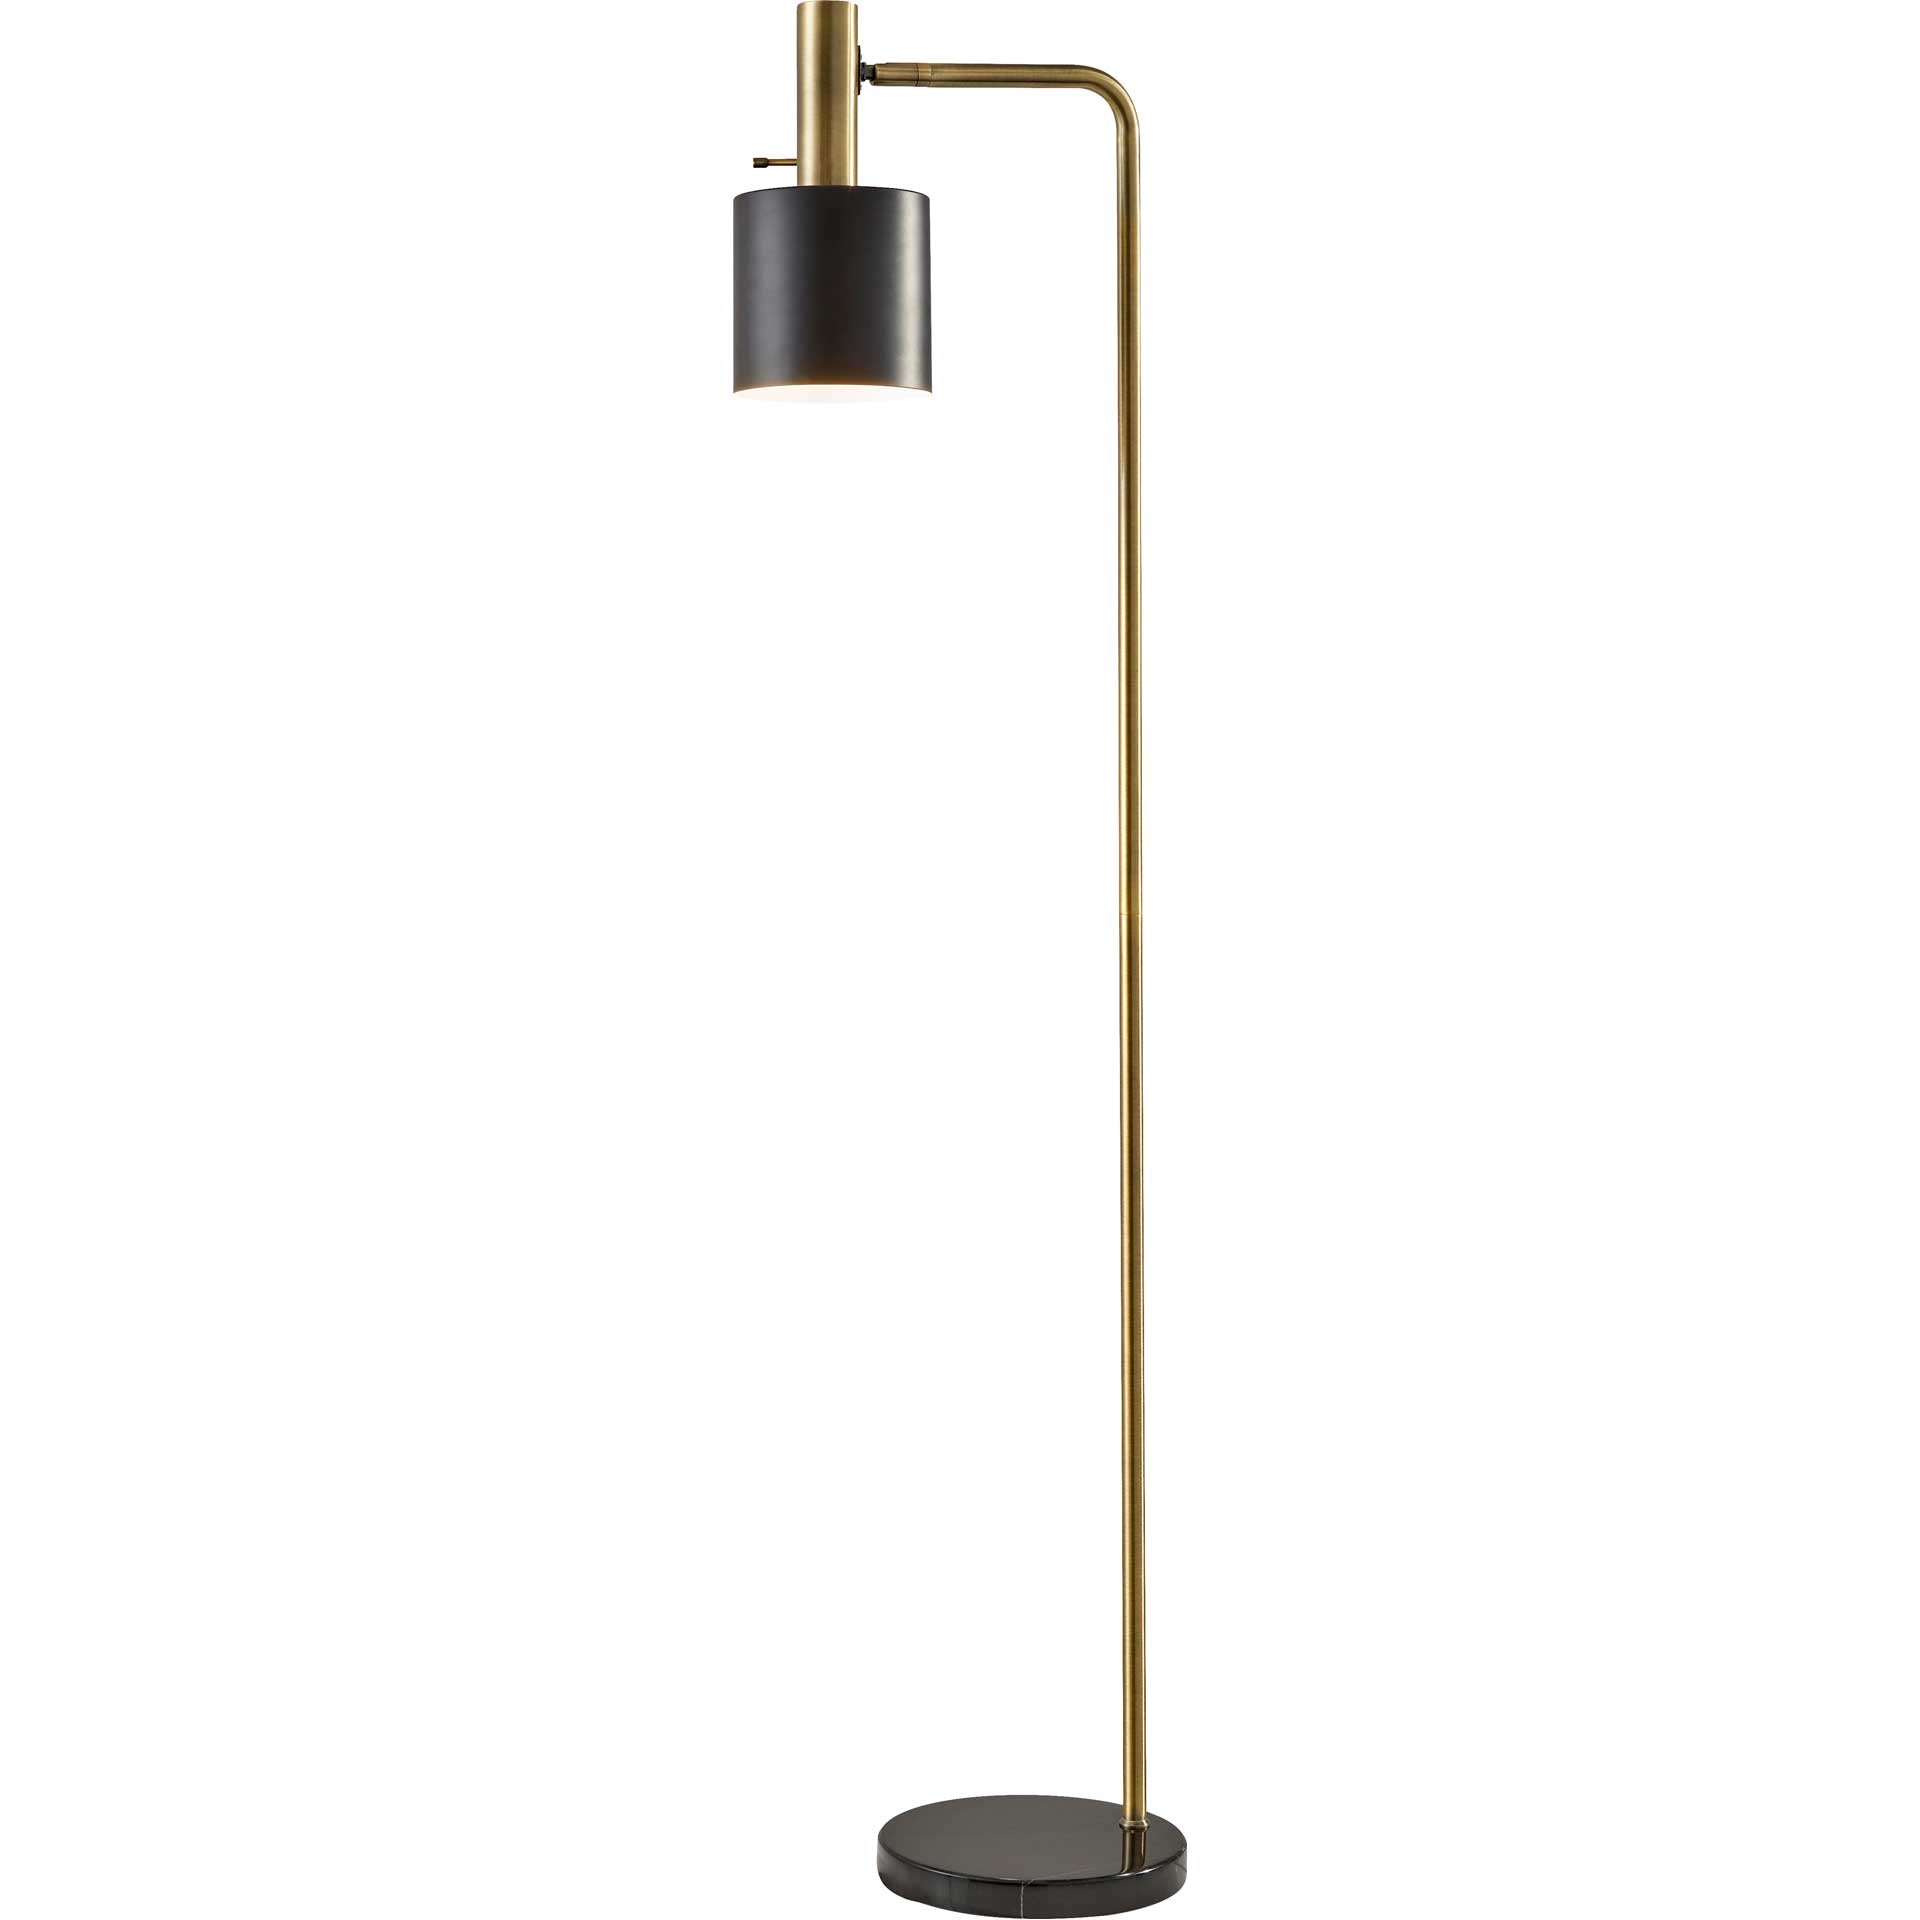 Epinal Floor Lamp Antique Brass/Black